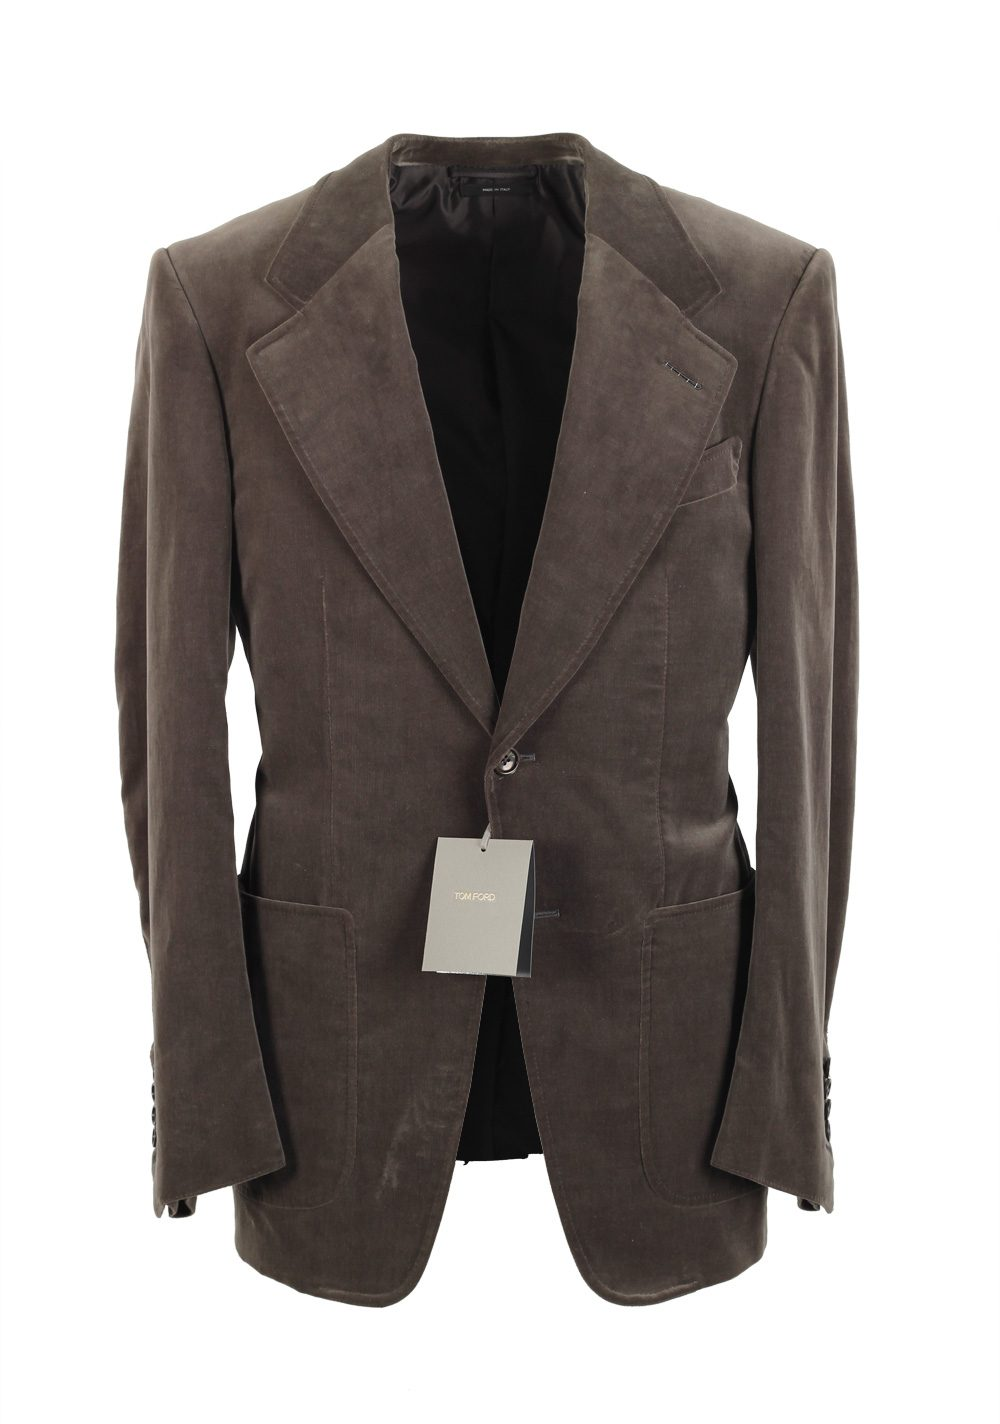 undefeated x fresh styles great varieties TOM FORD Wetherby Brownish Gray Sport Coat Velvet Tuxedo Dinner Jacket Size  48 / 38R U.S. Cotton Base T